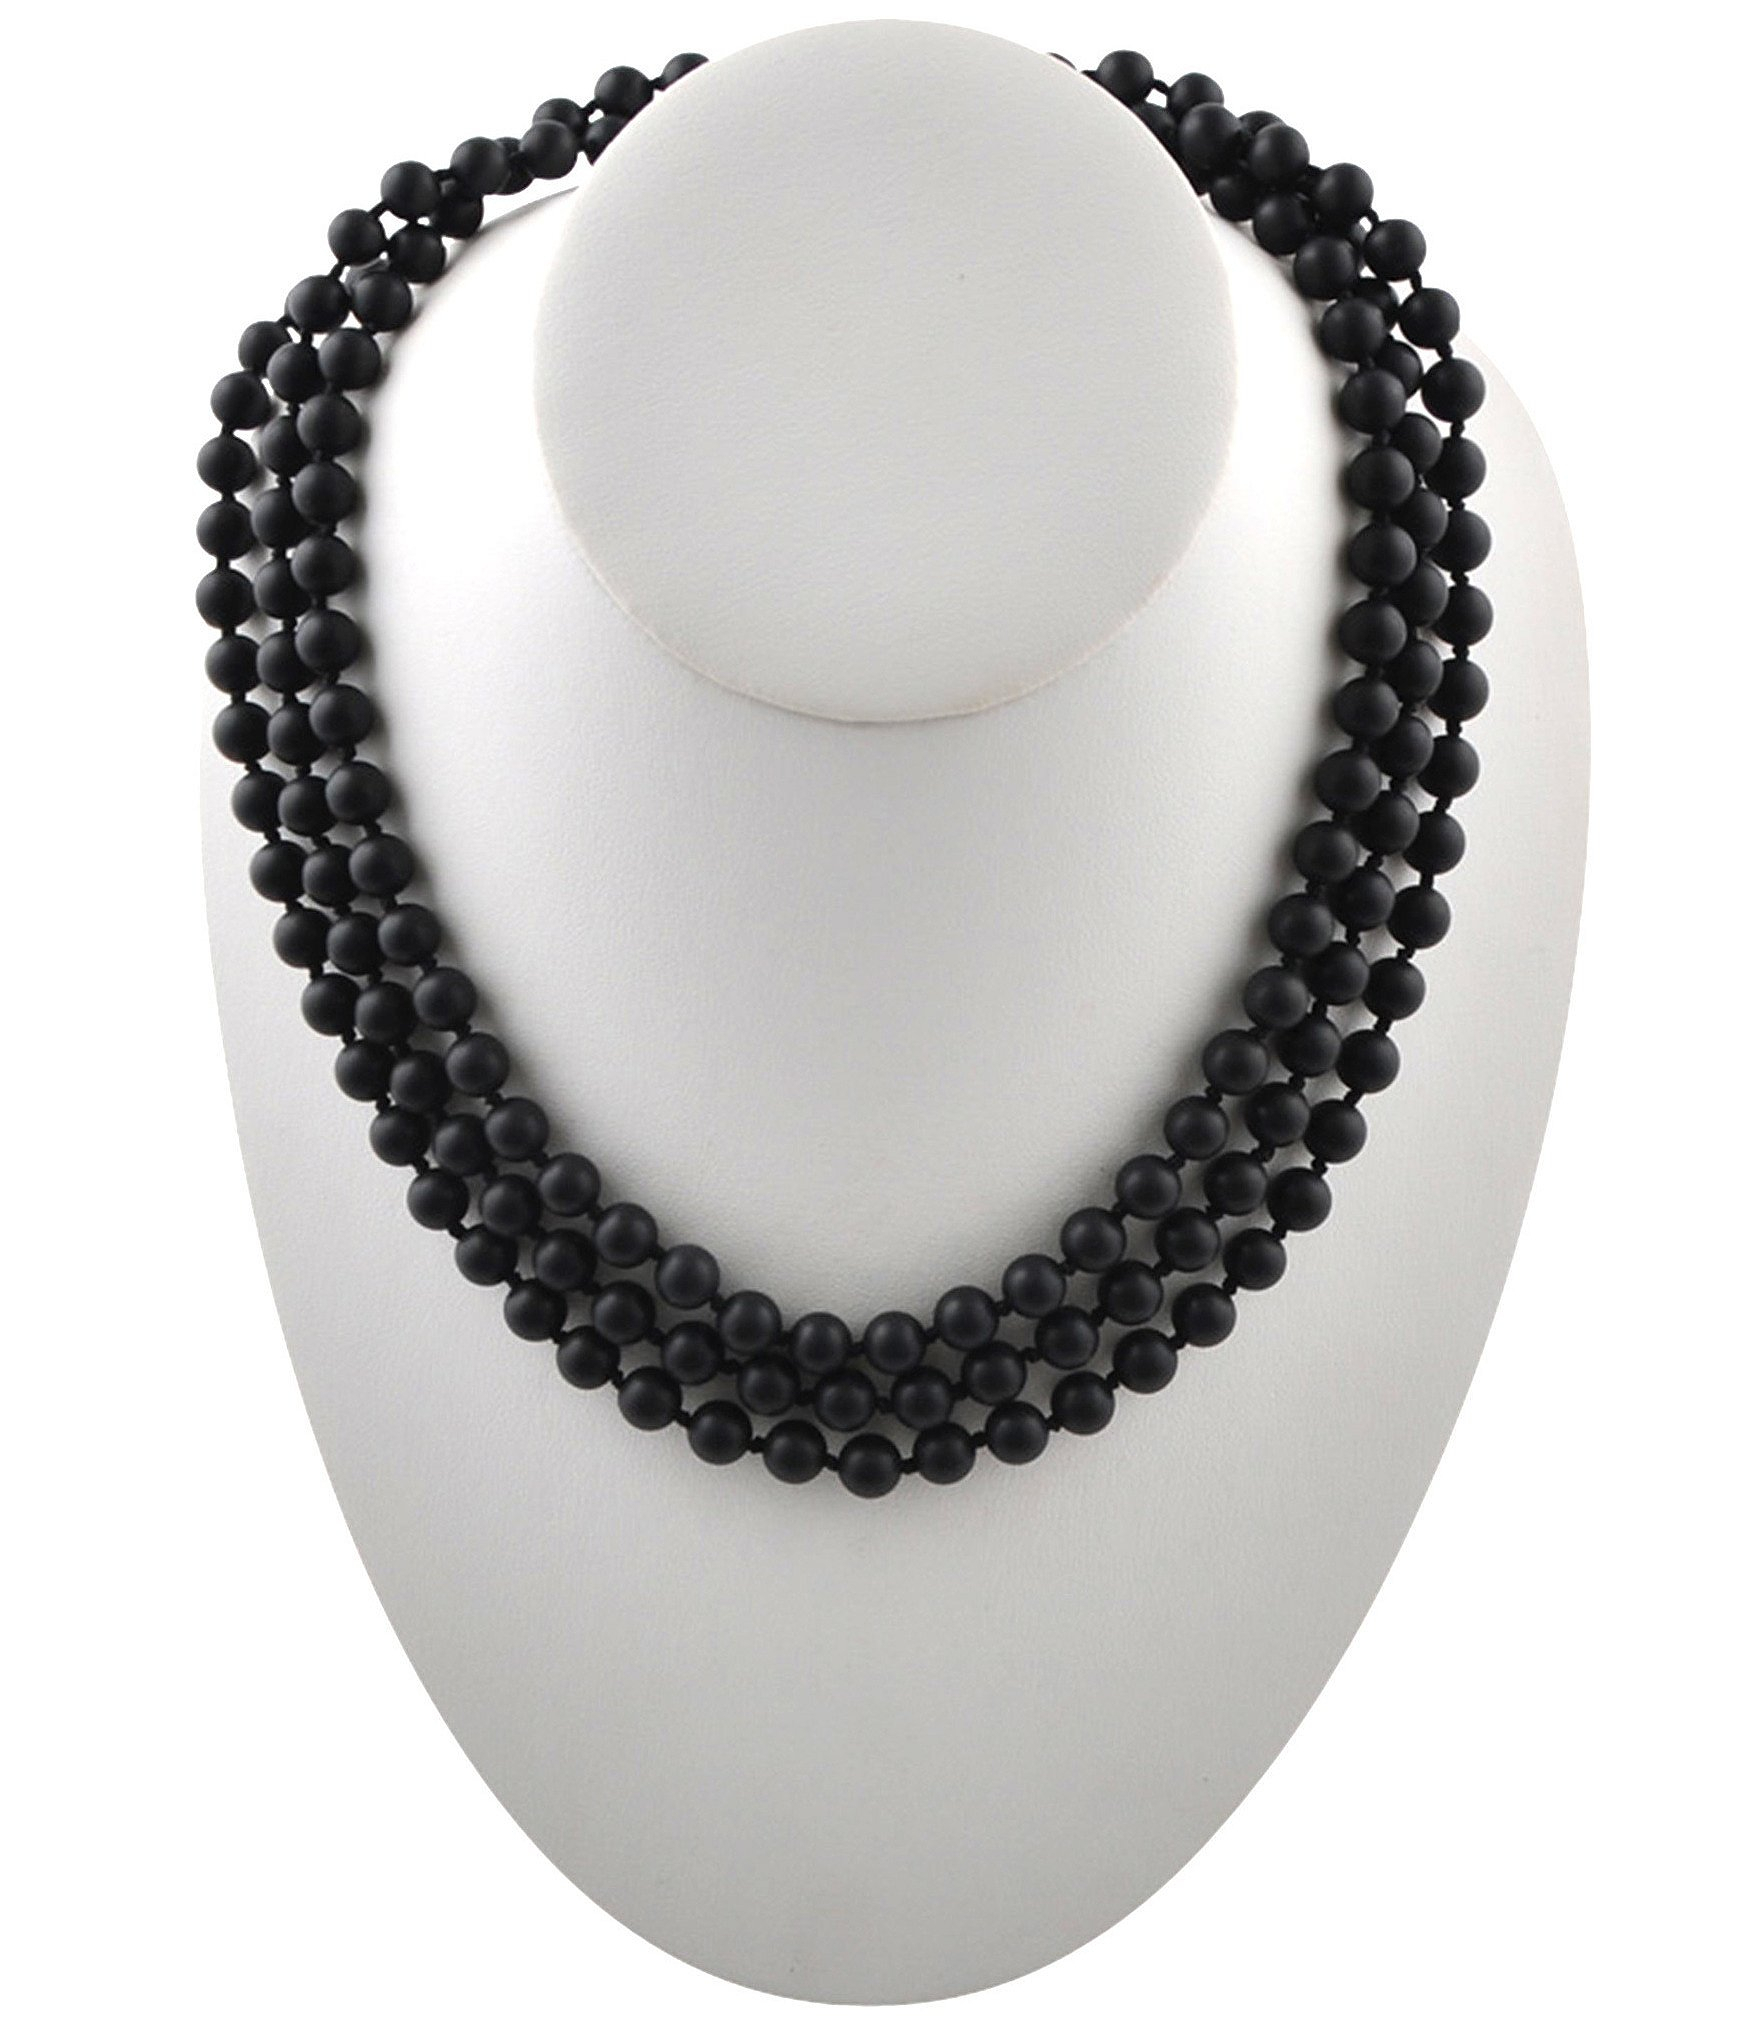 Barse Long Genuine Stone Wrap Necklace For Current String Of Beads Y Necklaces (View 18 of 25)